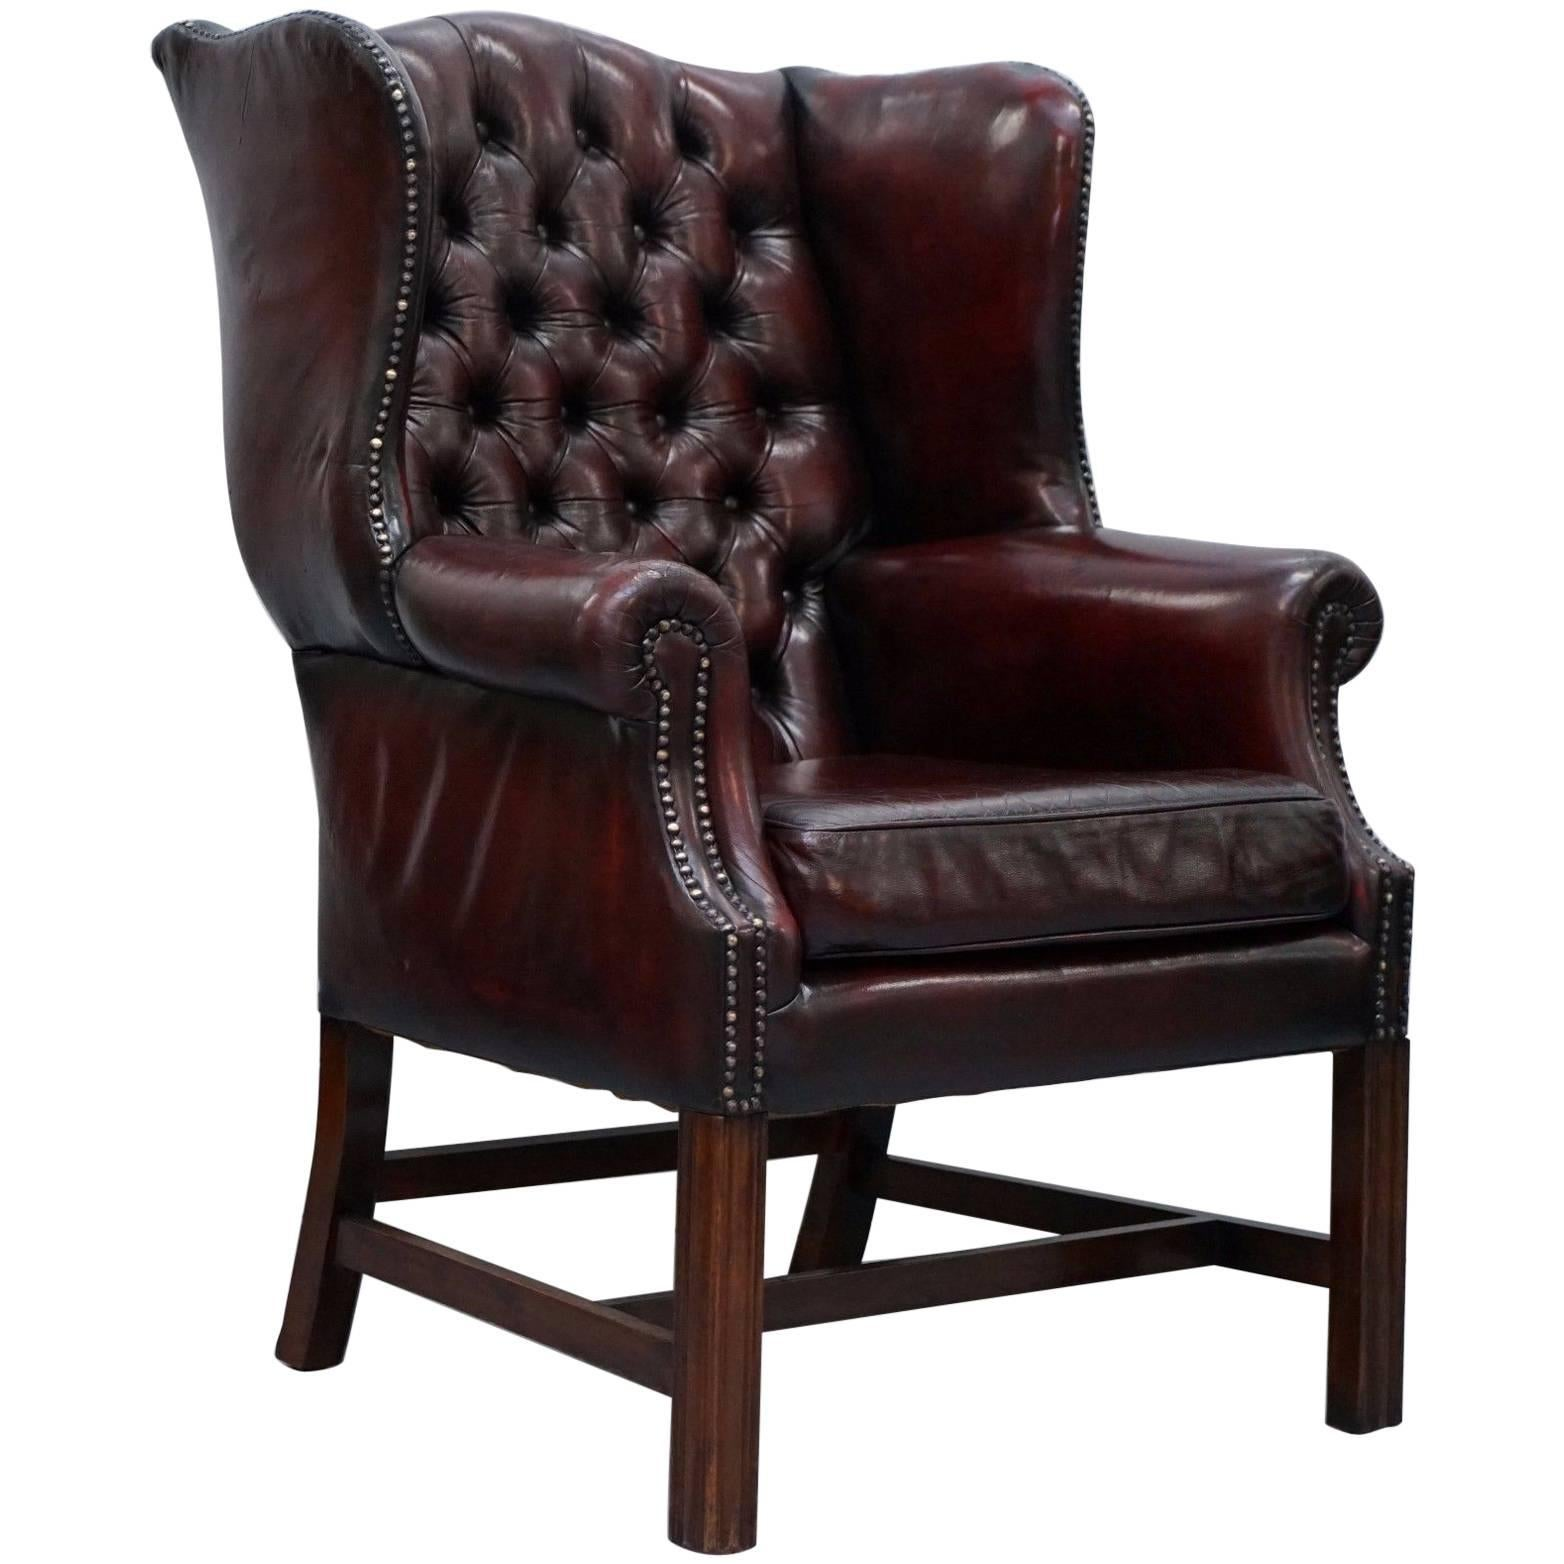 oxblood leather wing chair swing cushions restored hand dyed 1960s chesterfield georgian wingback armchair for sale